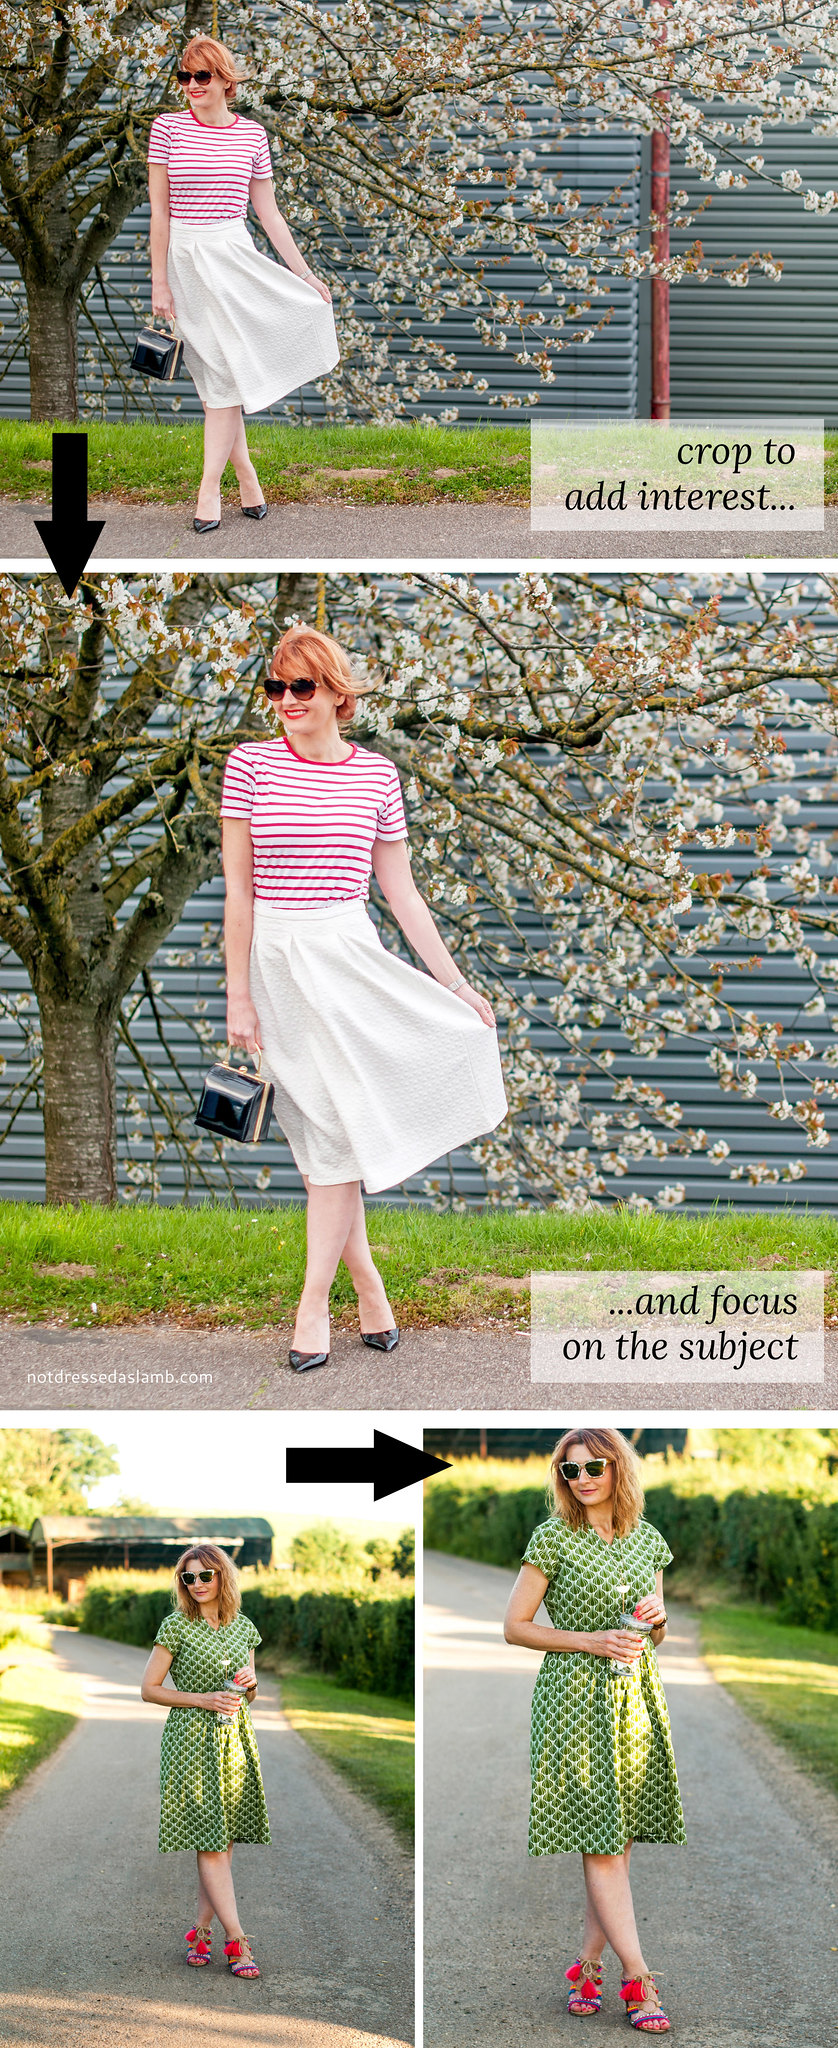 6 Easy Ways to Improve Your Blog Outfit Photos, Part 2: Editing Tips - Crop to add interest | Not Dressed As Lamb